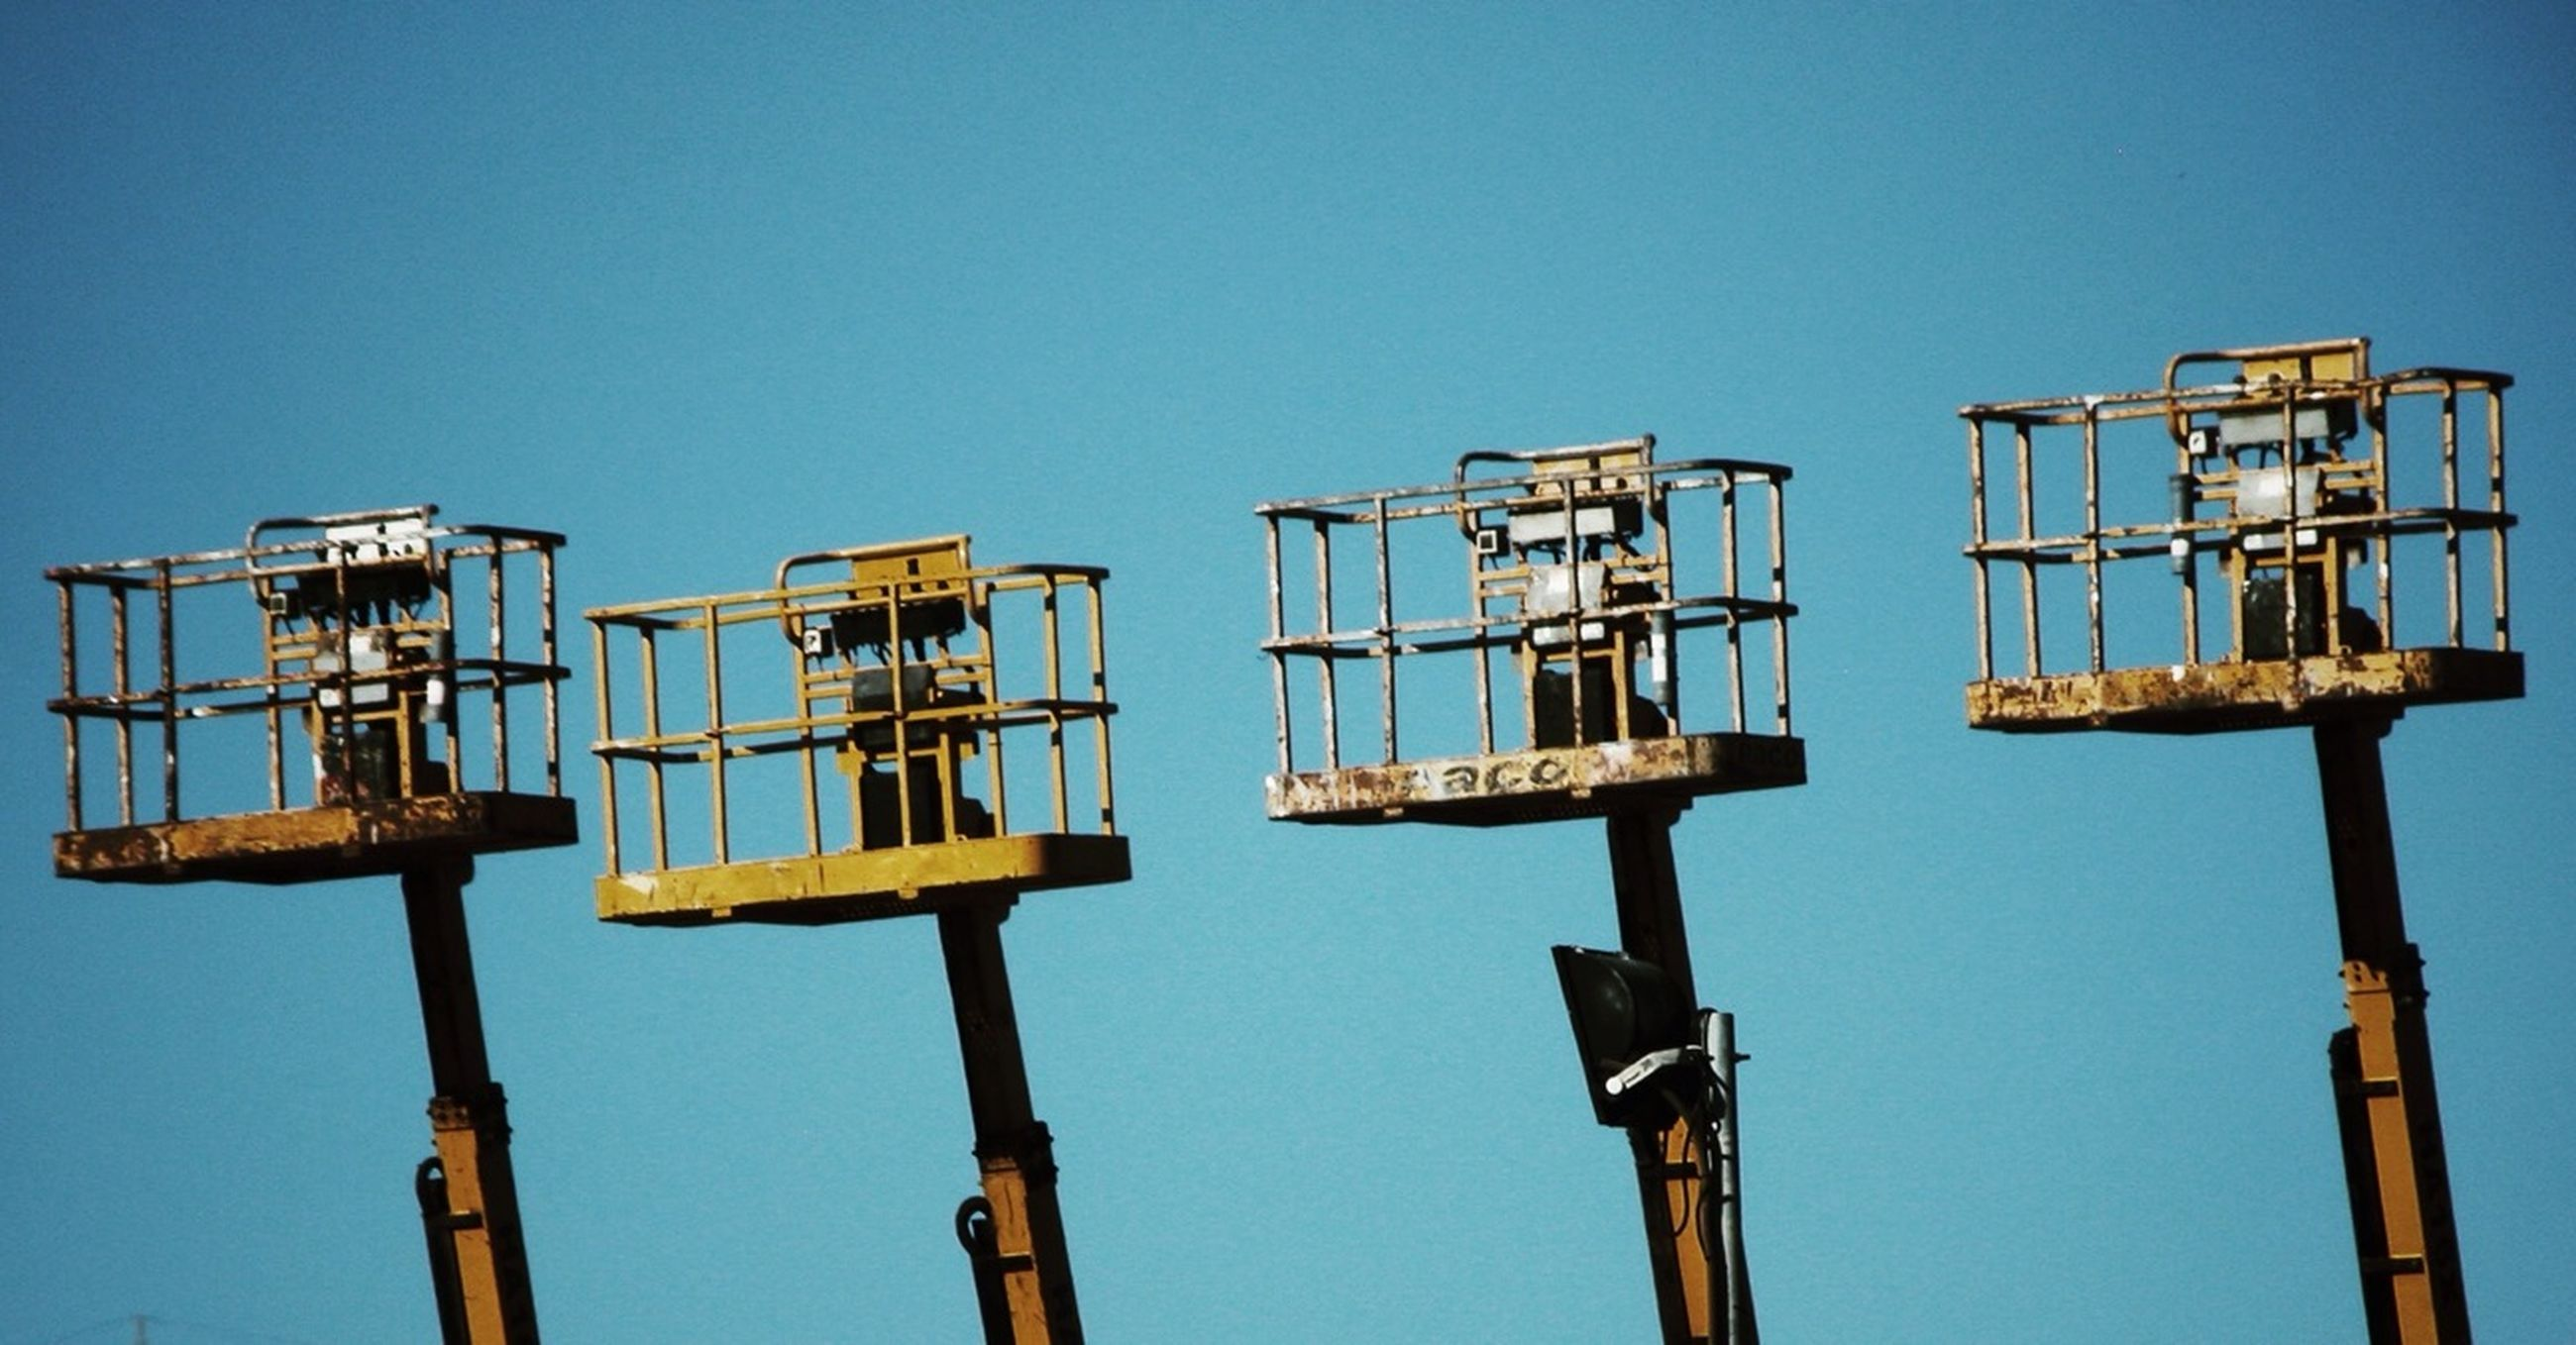 clear sky, low angle view, blue, copy space, pole, industry, fuel and power generation, construction, metal, construction site, technology, lighting equipment, outdoors, day, crane - construction machinery, no people, electricity, equipment, built structure, sunlight